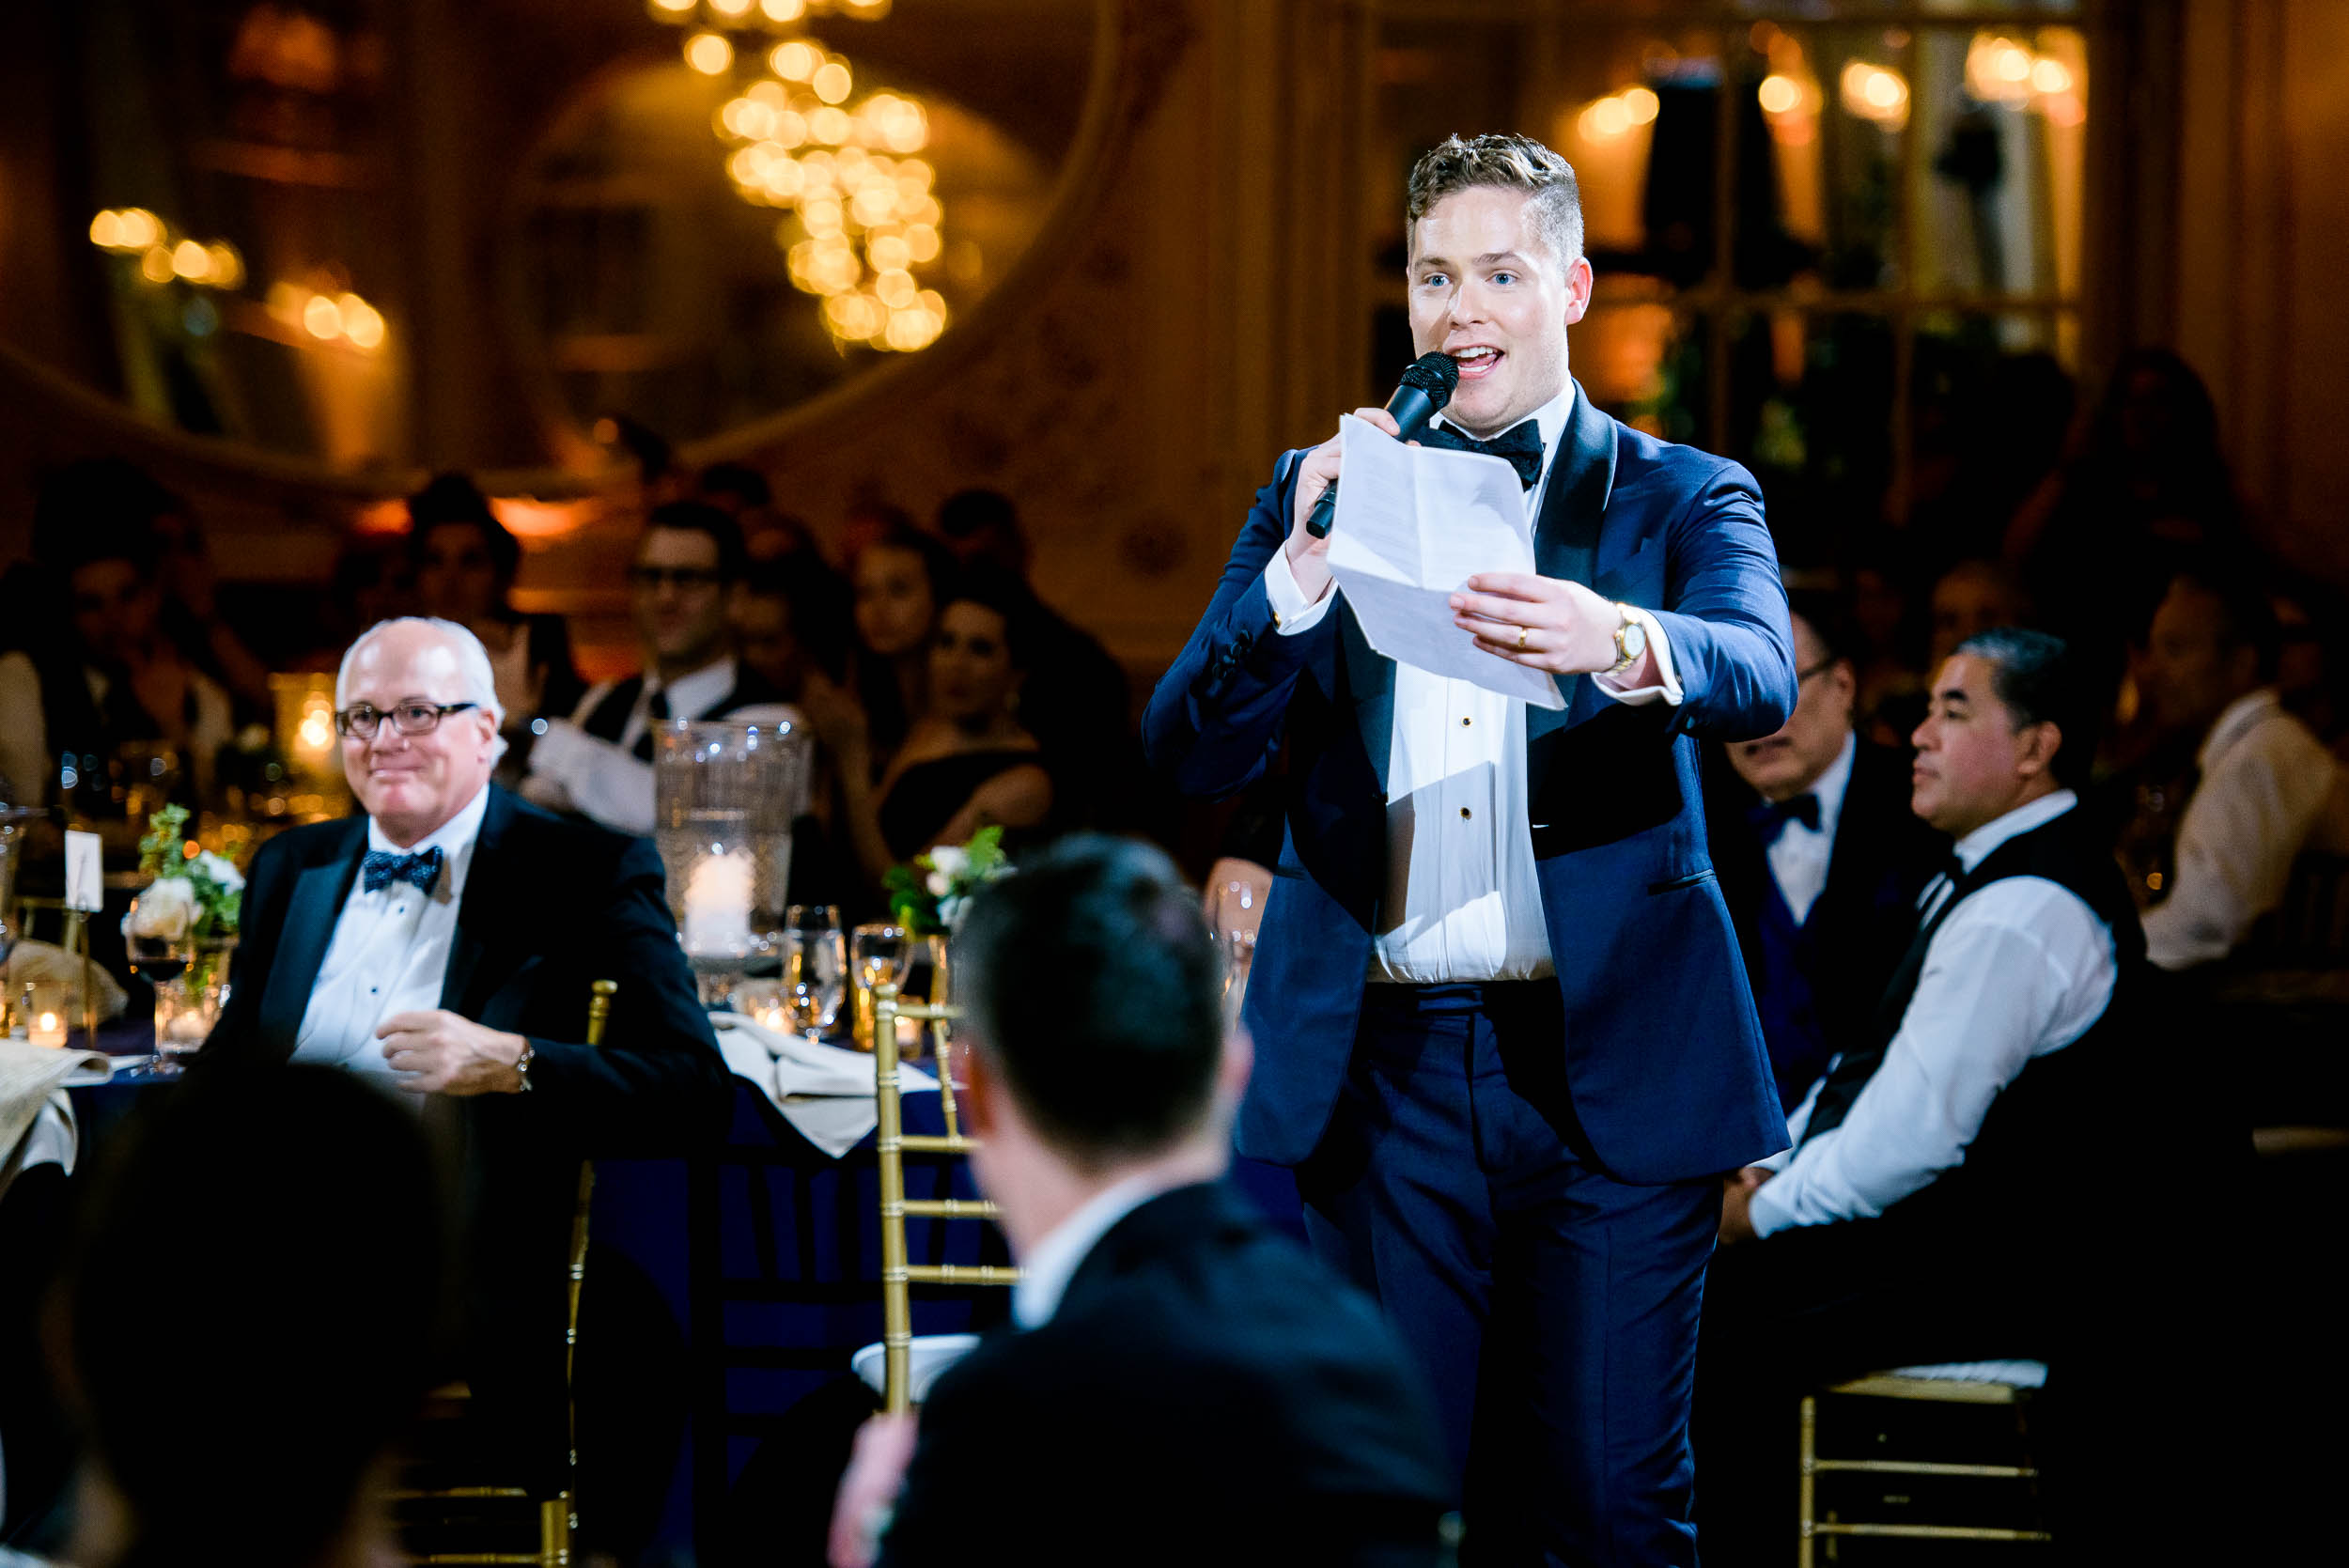 Groom giving speech at luxurious fall wedding at the Chicago Symphony Center captured by J. Brown Photography. See more wedding ideas at jbrownphotography.com!